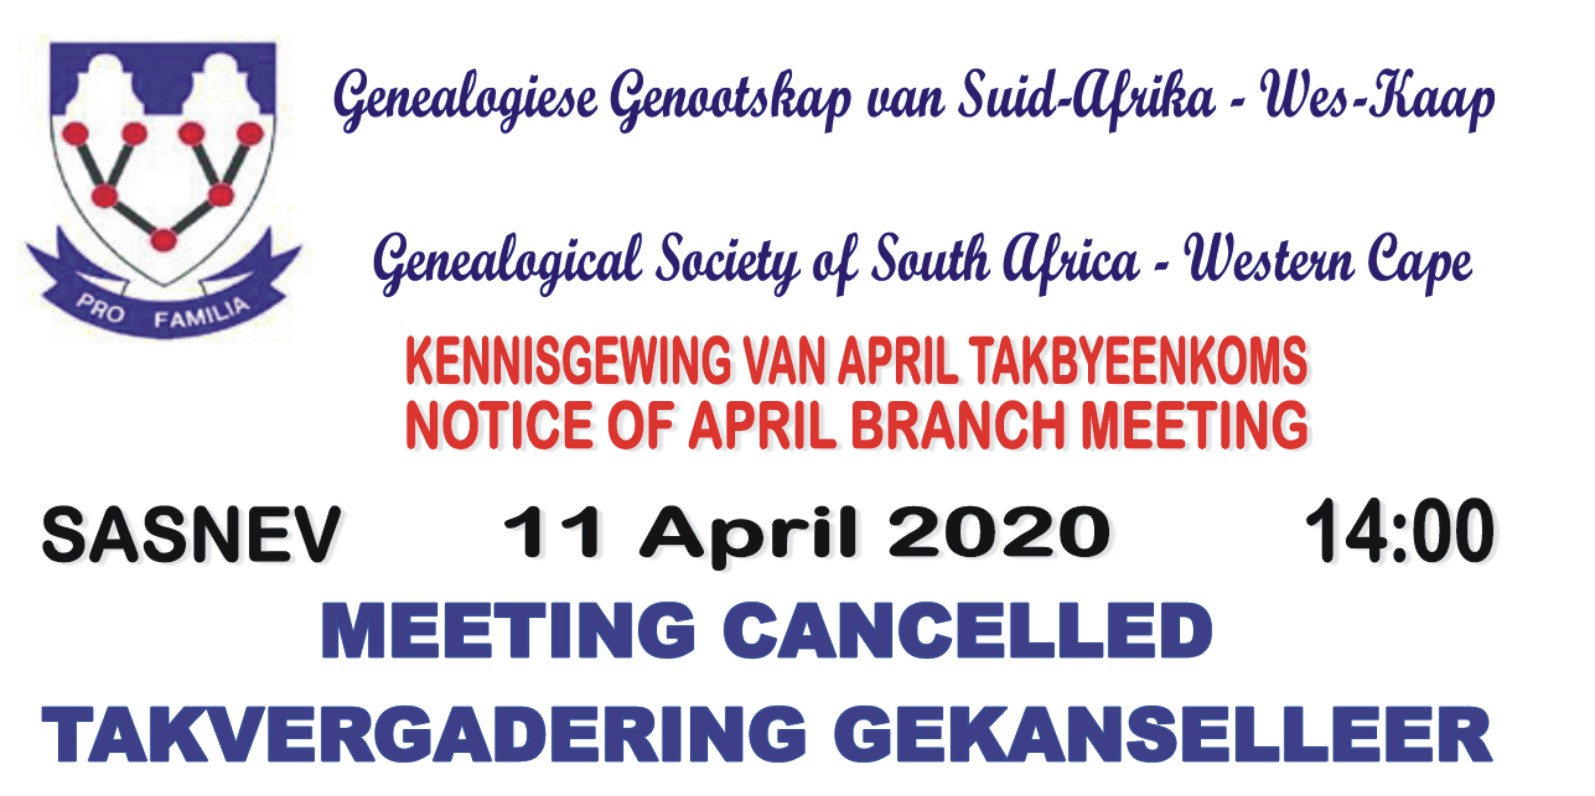 11 April 2020 Branch Meeting